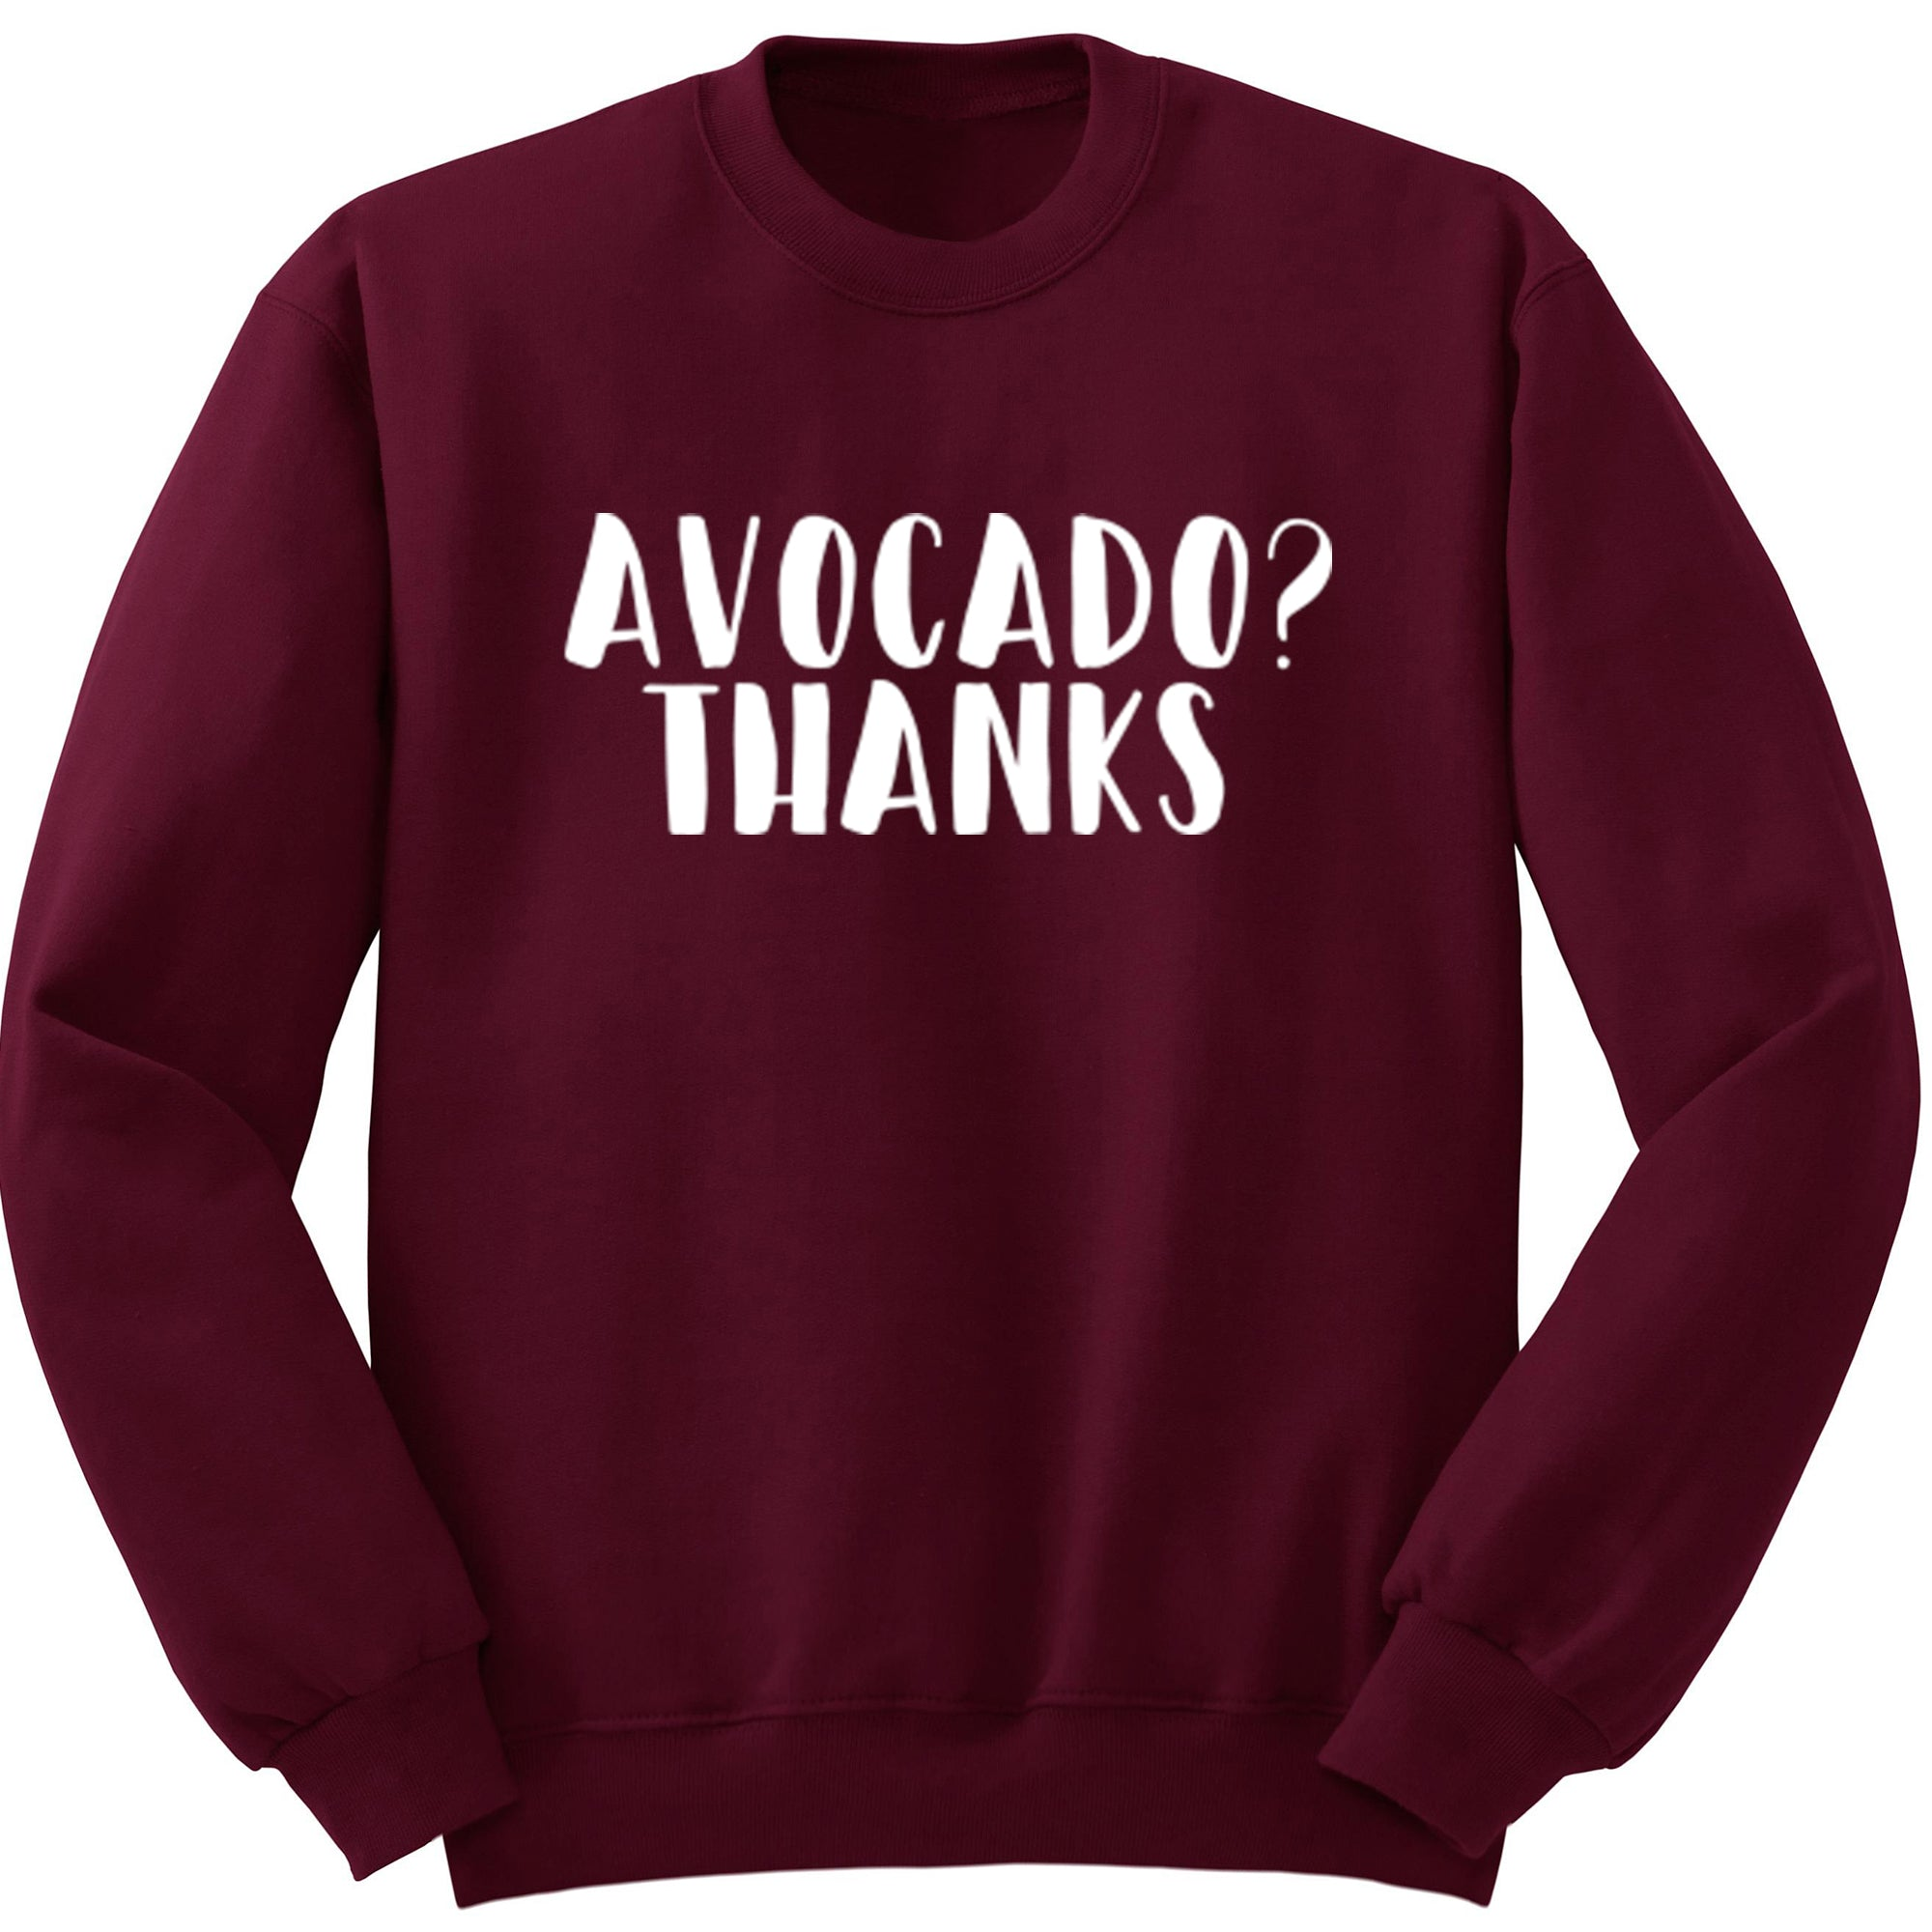 Avocado? Thanks Unisex Jumper S0245 - Illustrated Identity Ltd.